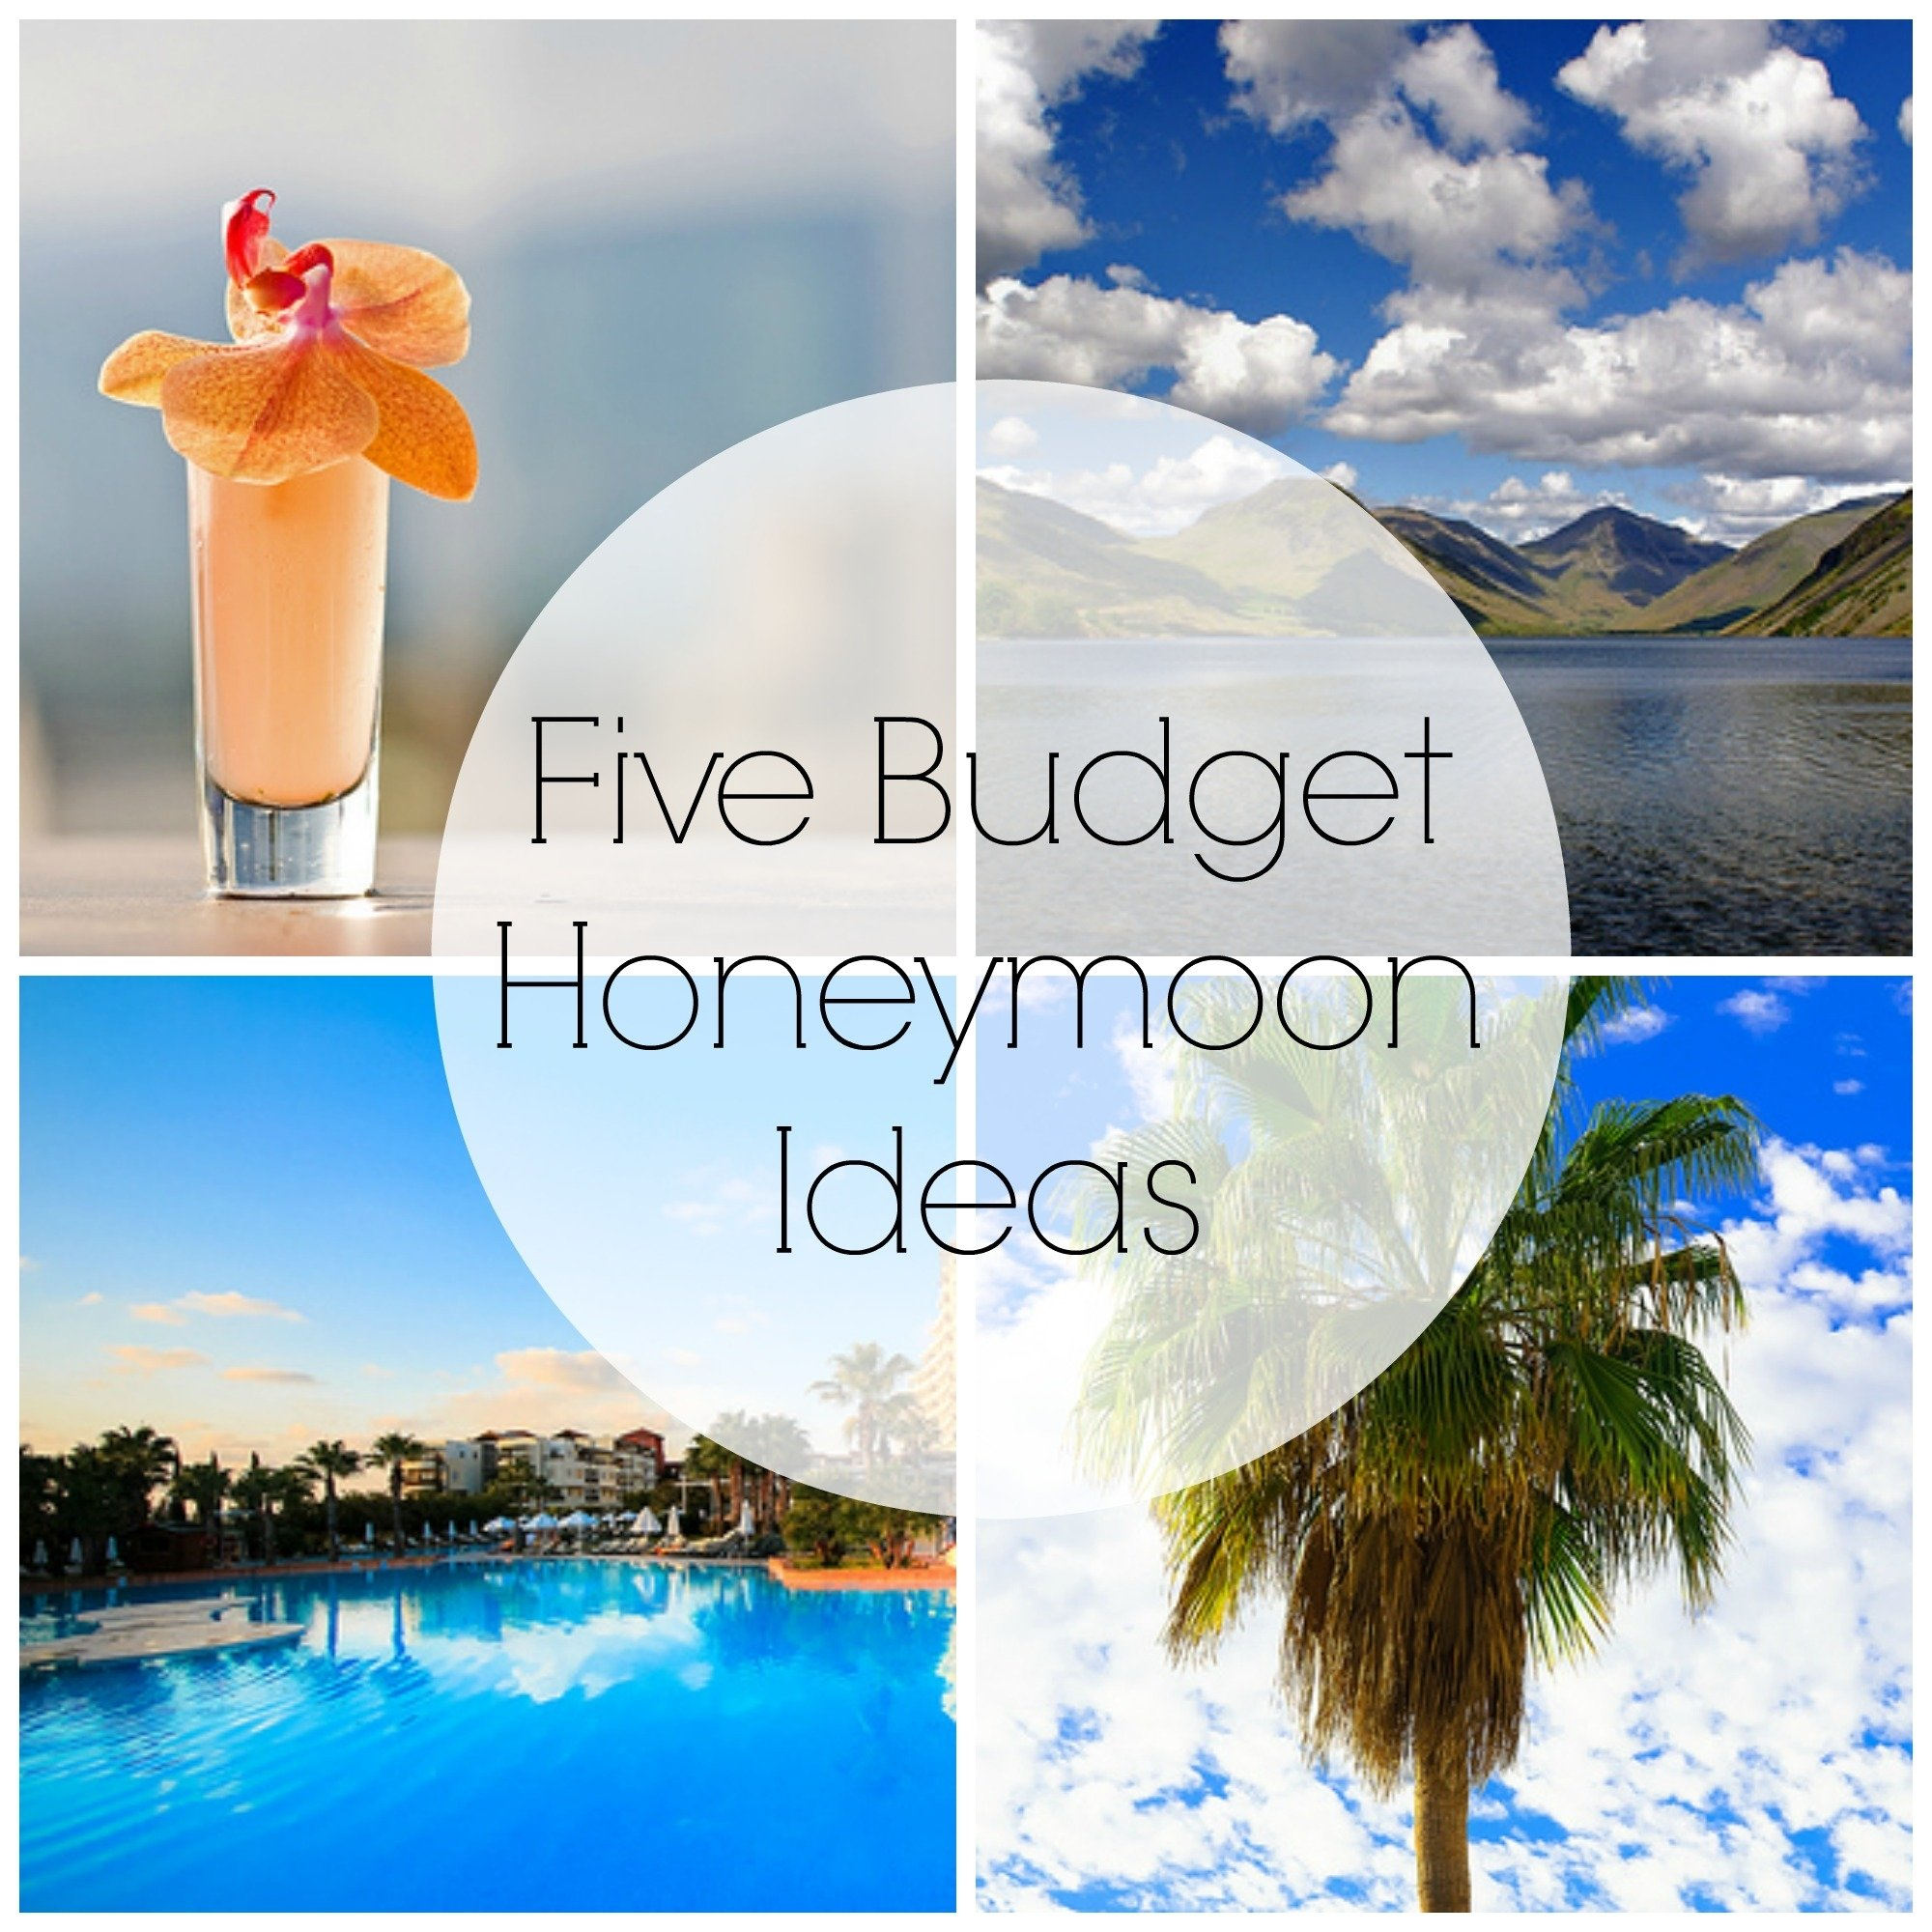 minimoon ideas archives - the budget bride company